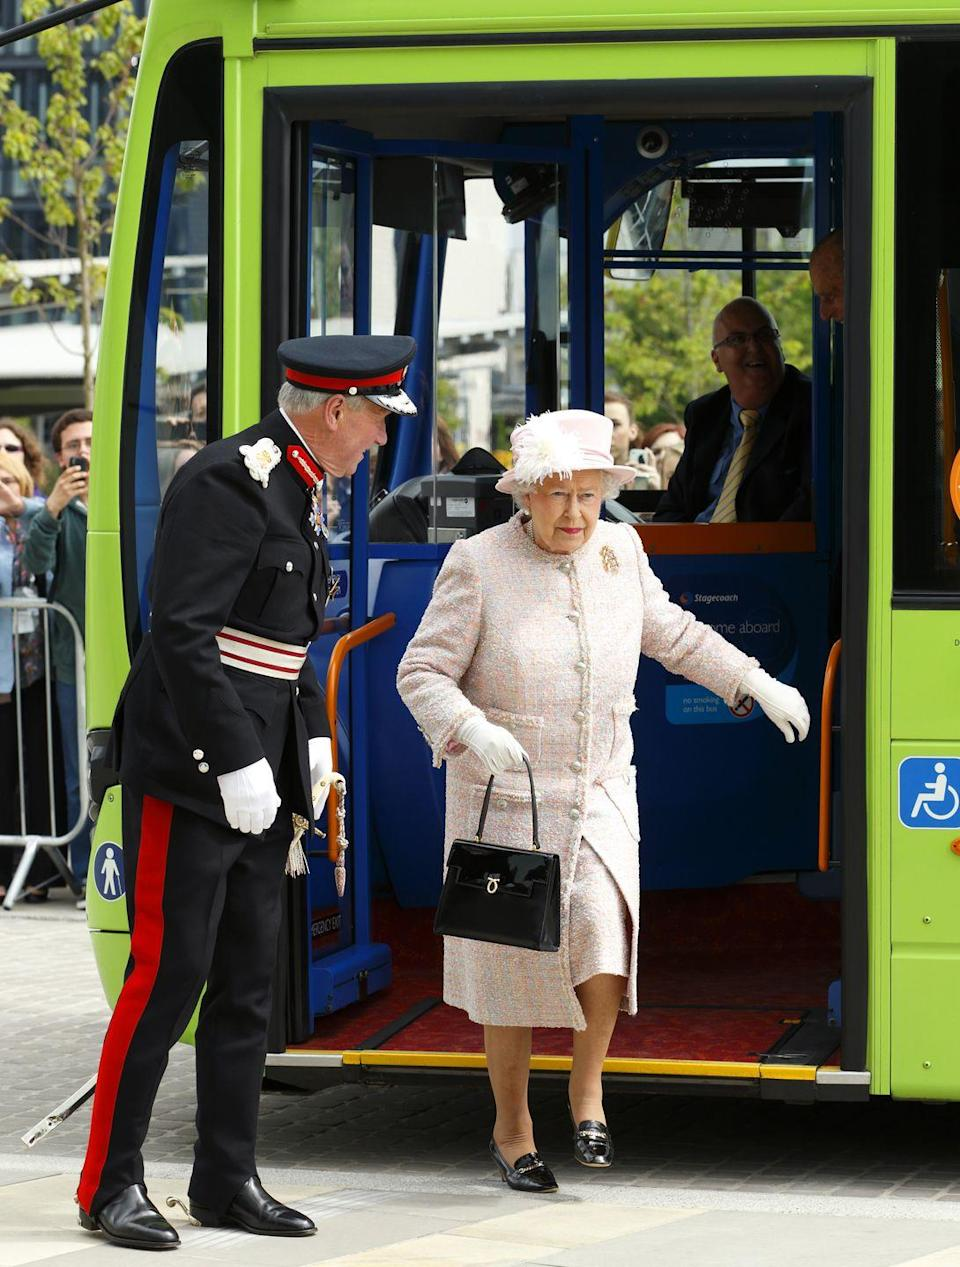 <p>The Queen may be royalty, but the monarch took the bus in 2013 with Prince Philip to an event in Cambridge, England. She had the Cambridgeshire Guided Bus Company to thank for her ride.</p>